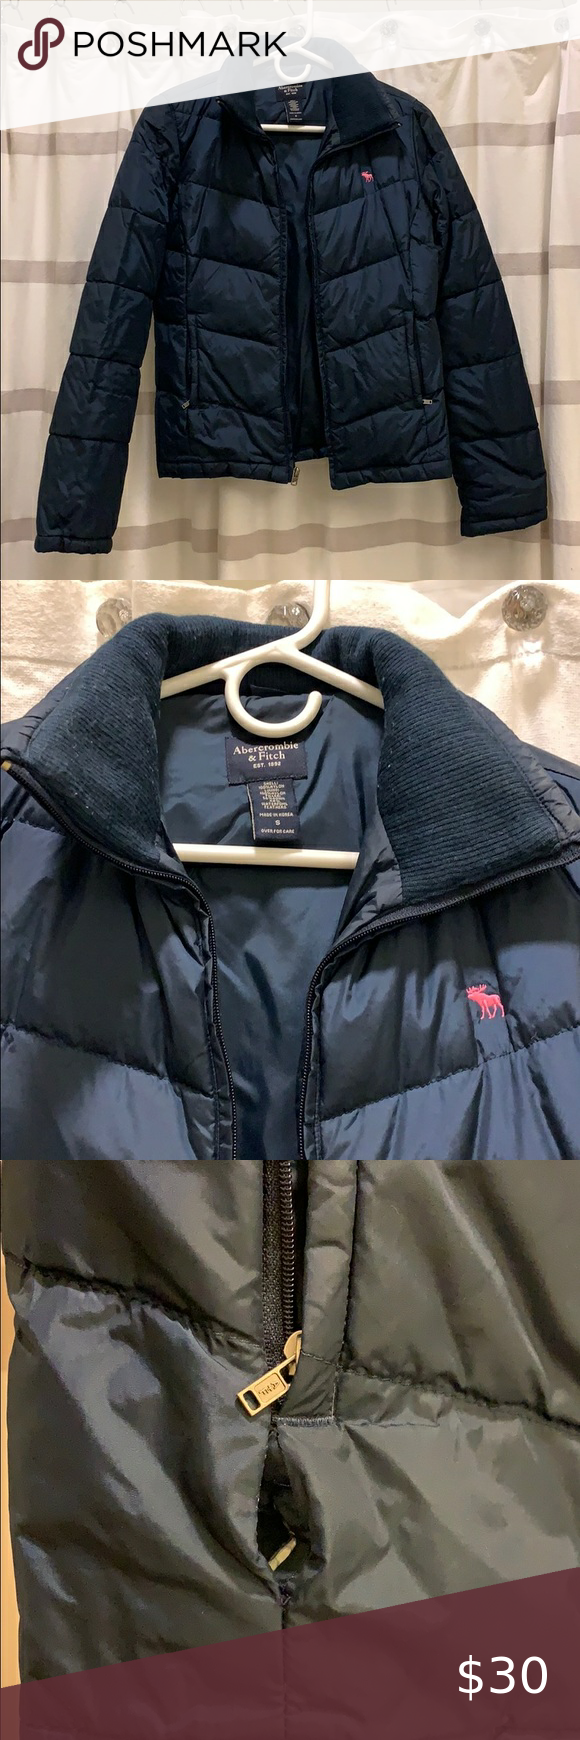 Donated A F Puffer Jacket Jackets Abercrombie And Fitch Jackets Puffer Jackets [ 1740 x 580 Pixel ]